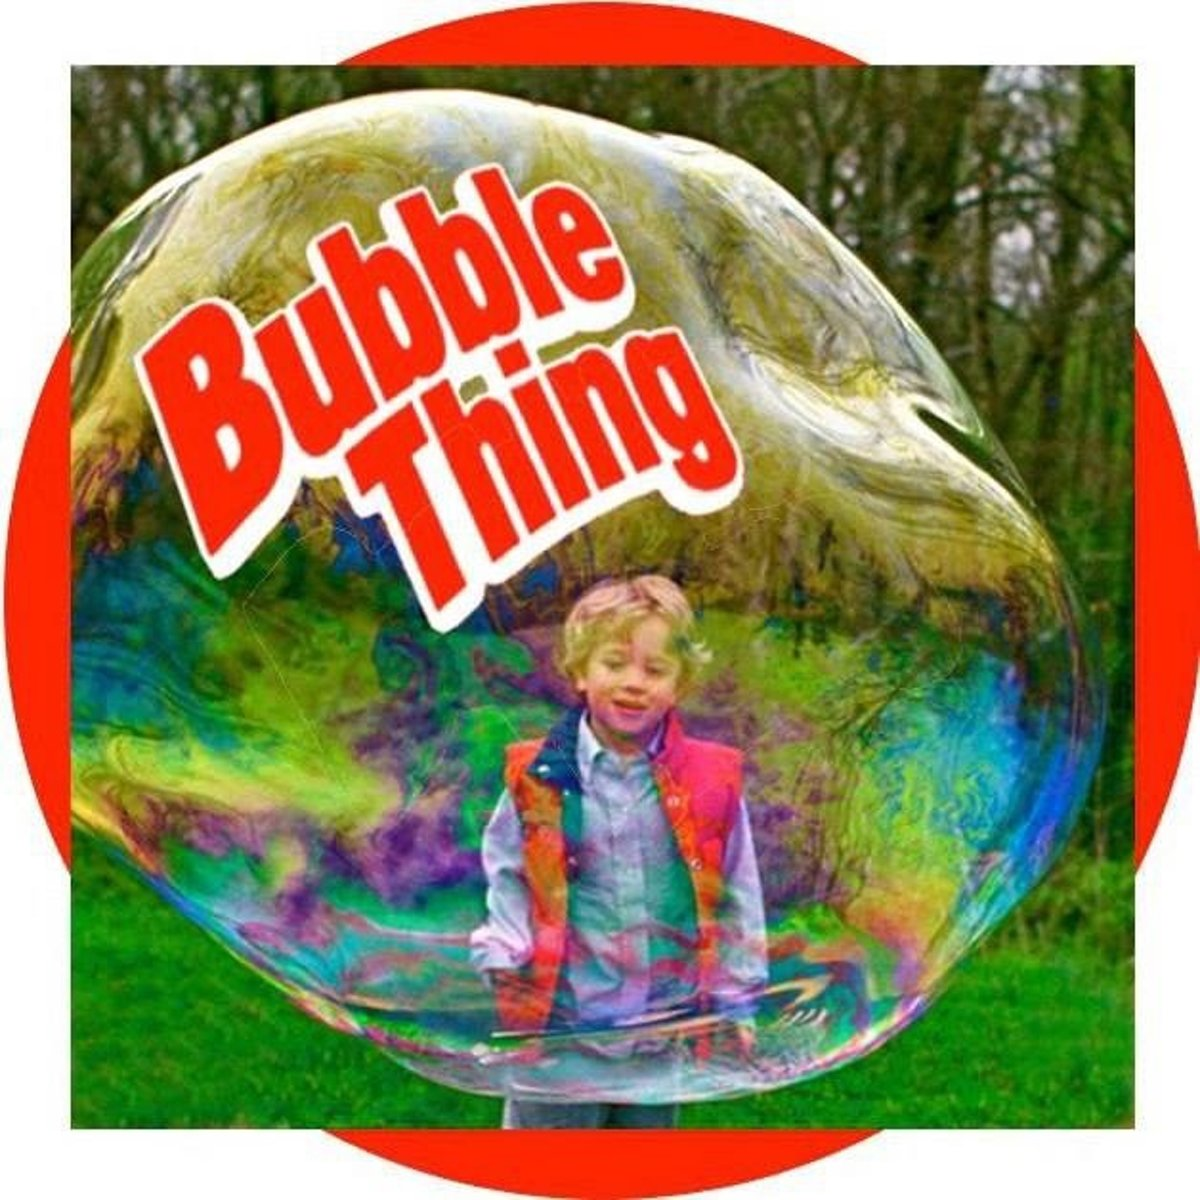 David Stein Inc - Big Bubble thing -